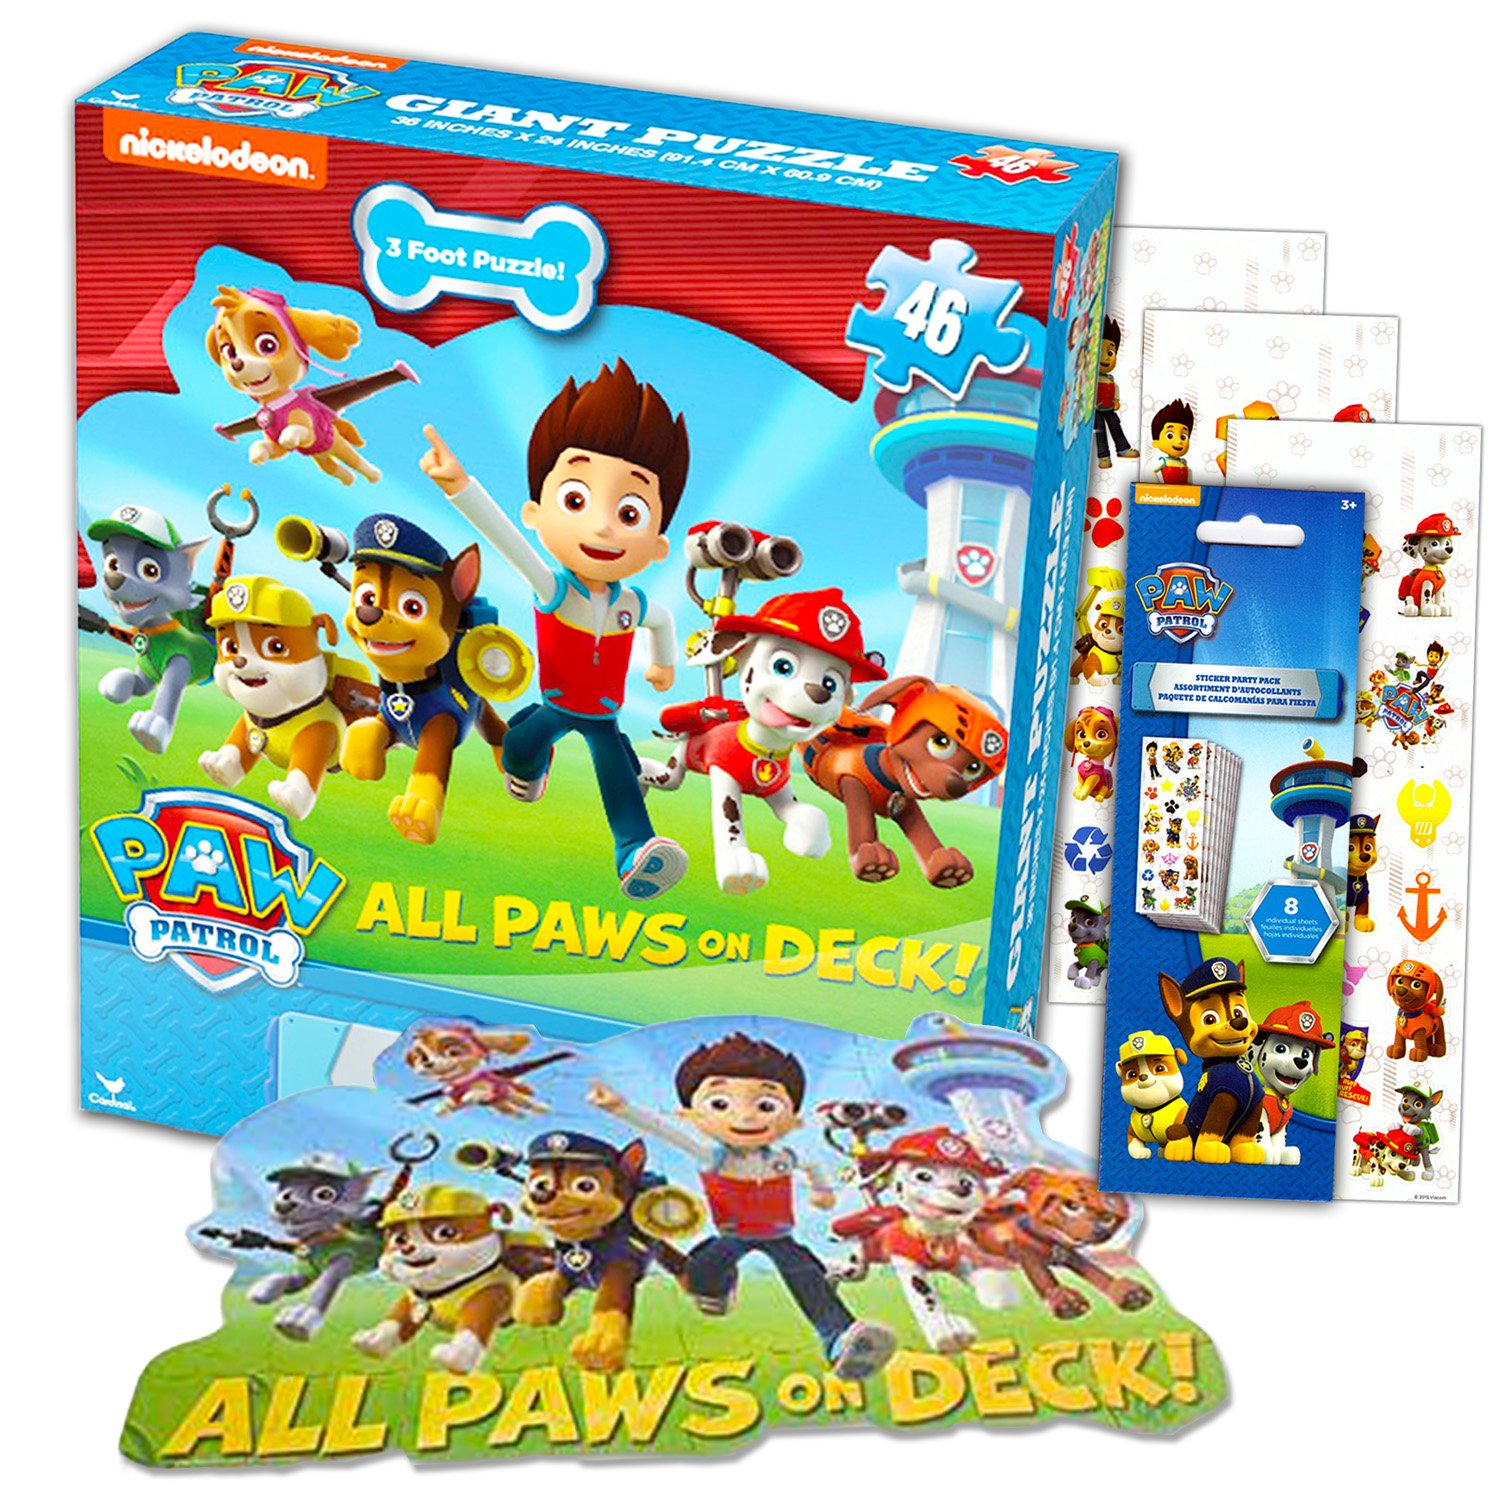 981e2bf9 Buy Paw Patrol Giant Floor Puzzle Set For Kids and Toddlers (3 Foot ...